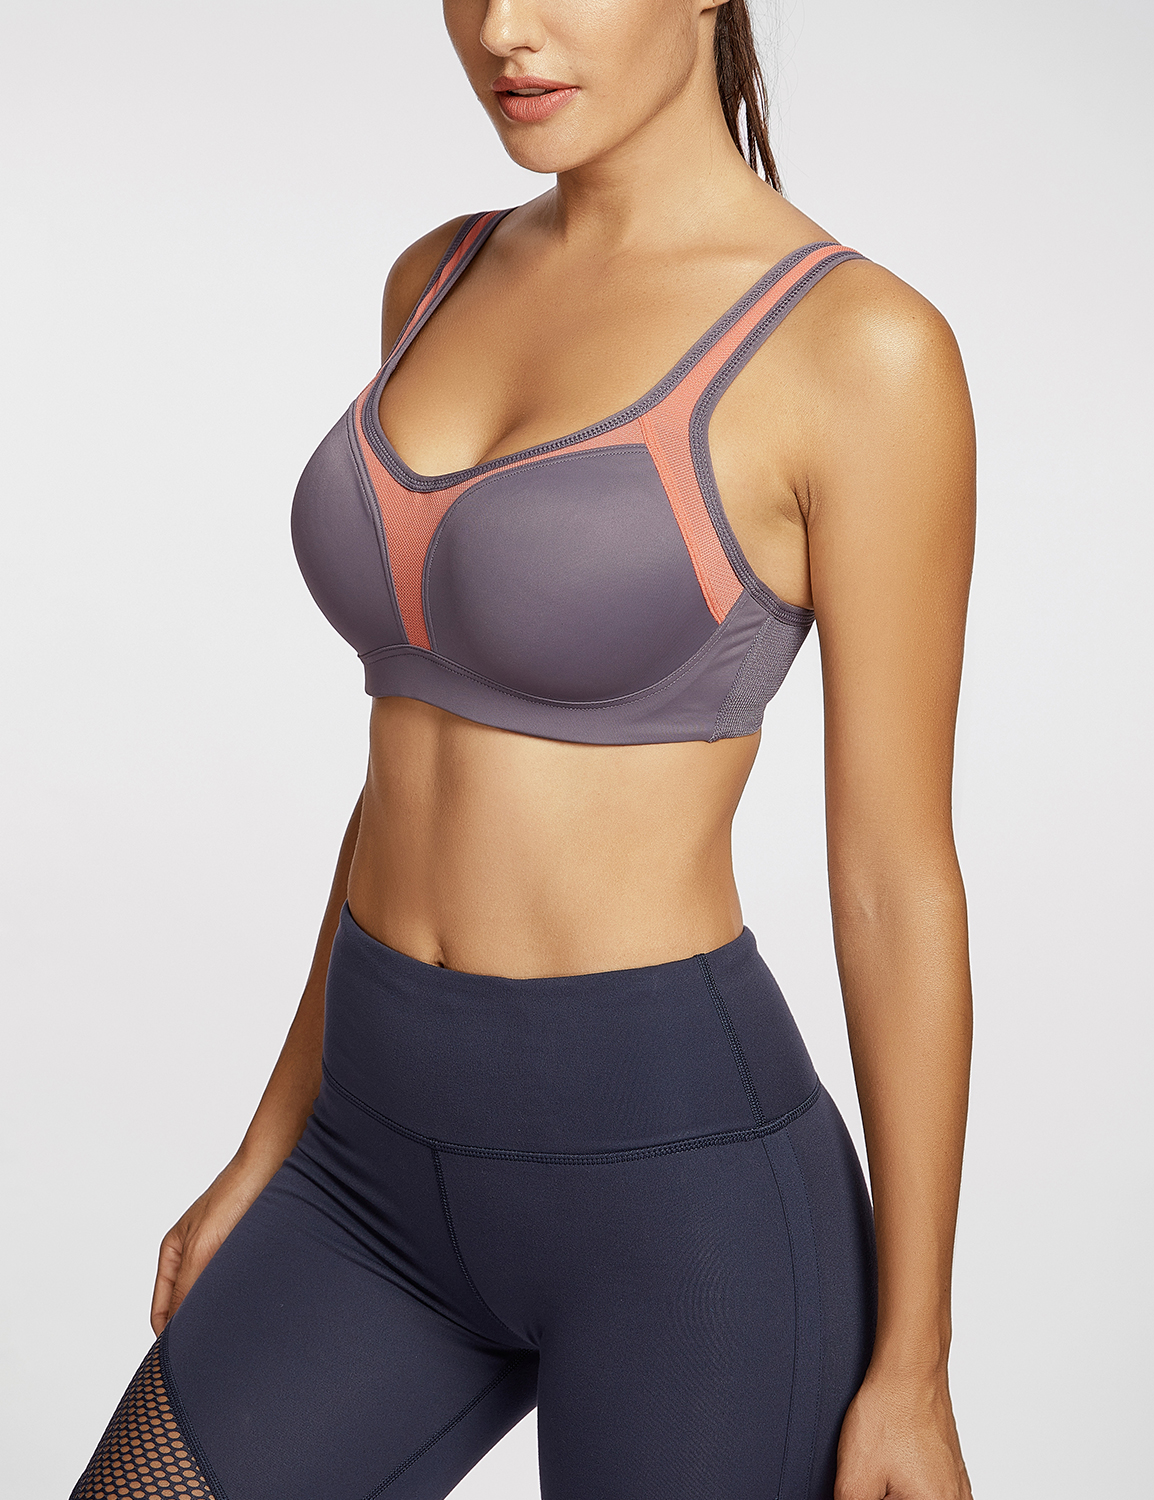 Women-039-s-Firm-Support-Contour-High-Impact-Underwire-Sports-Bra thumbnail 13